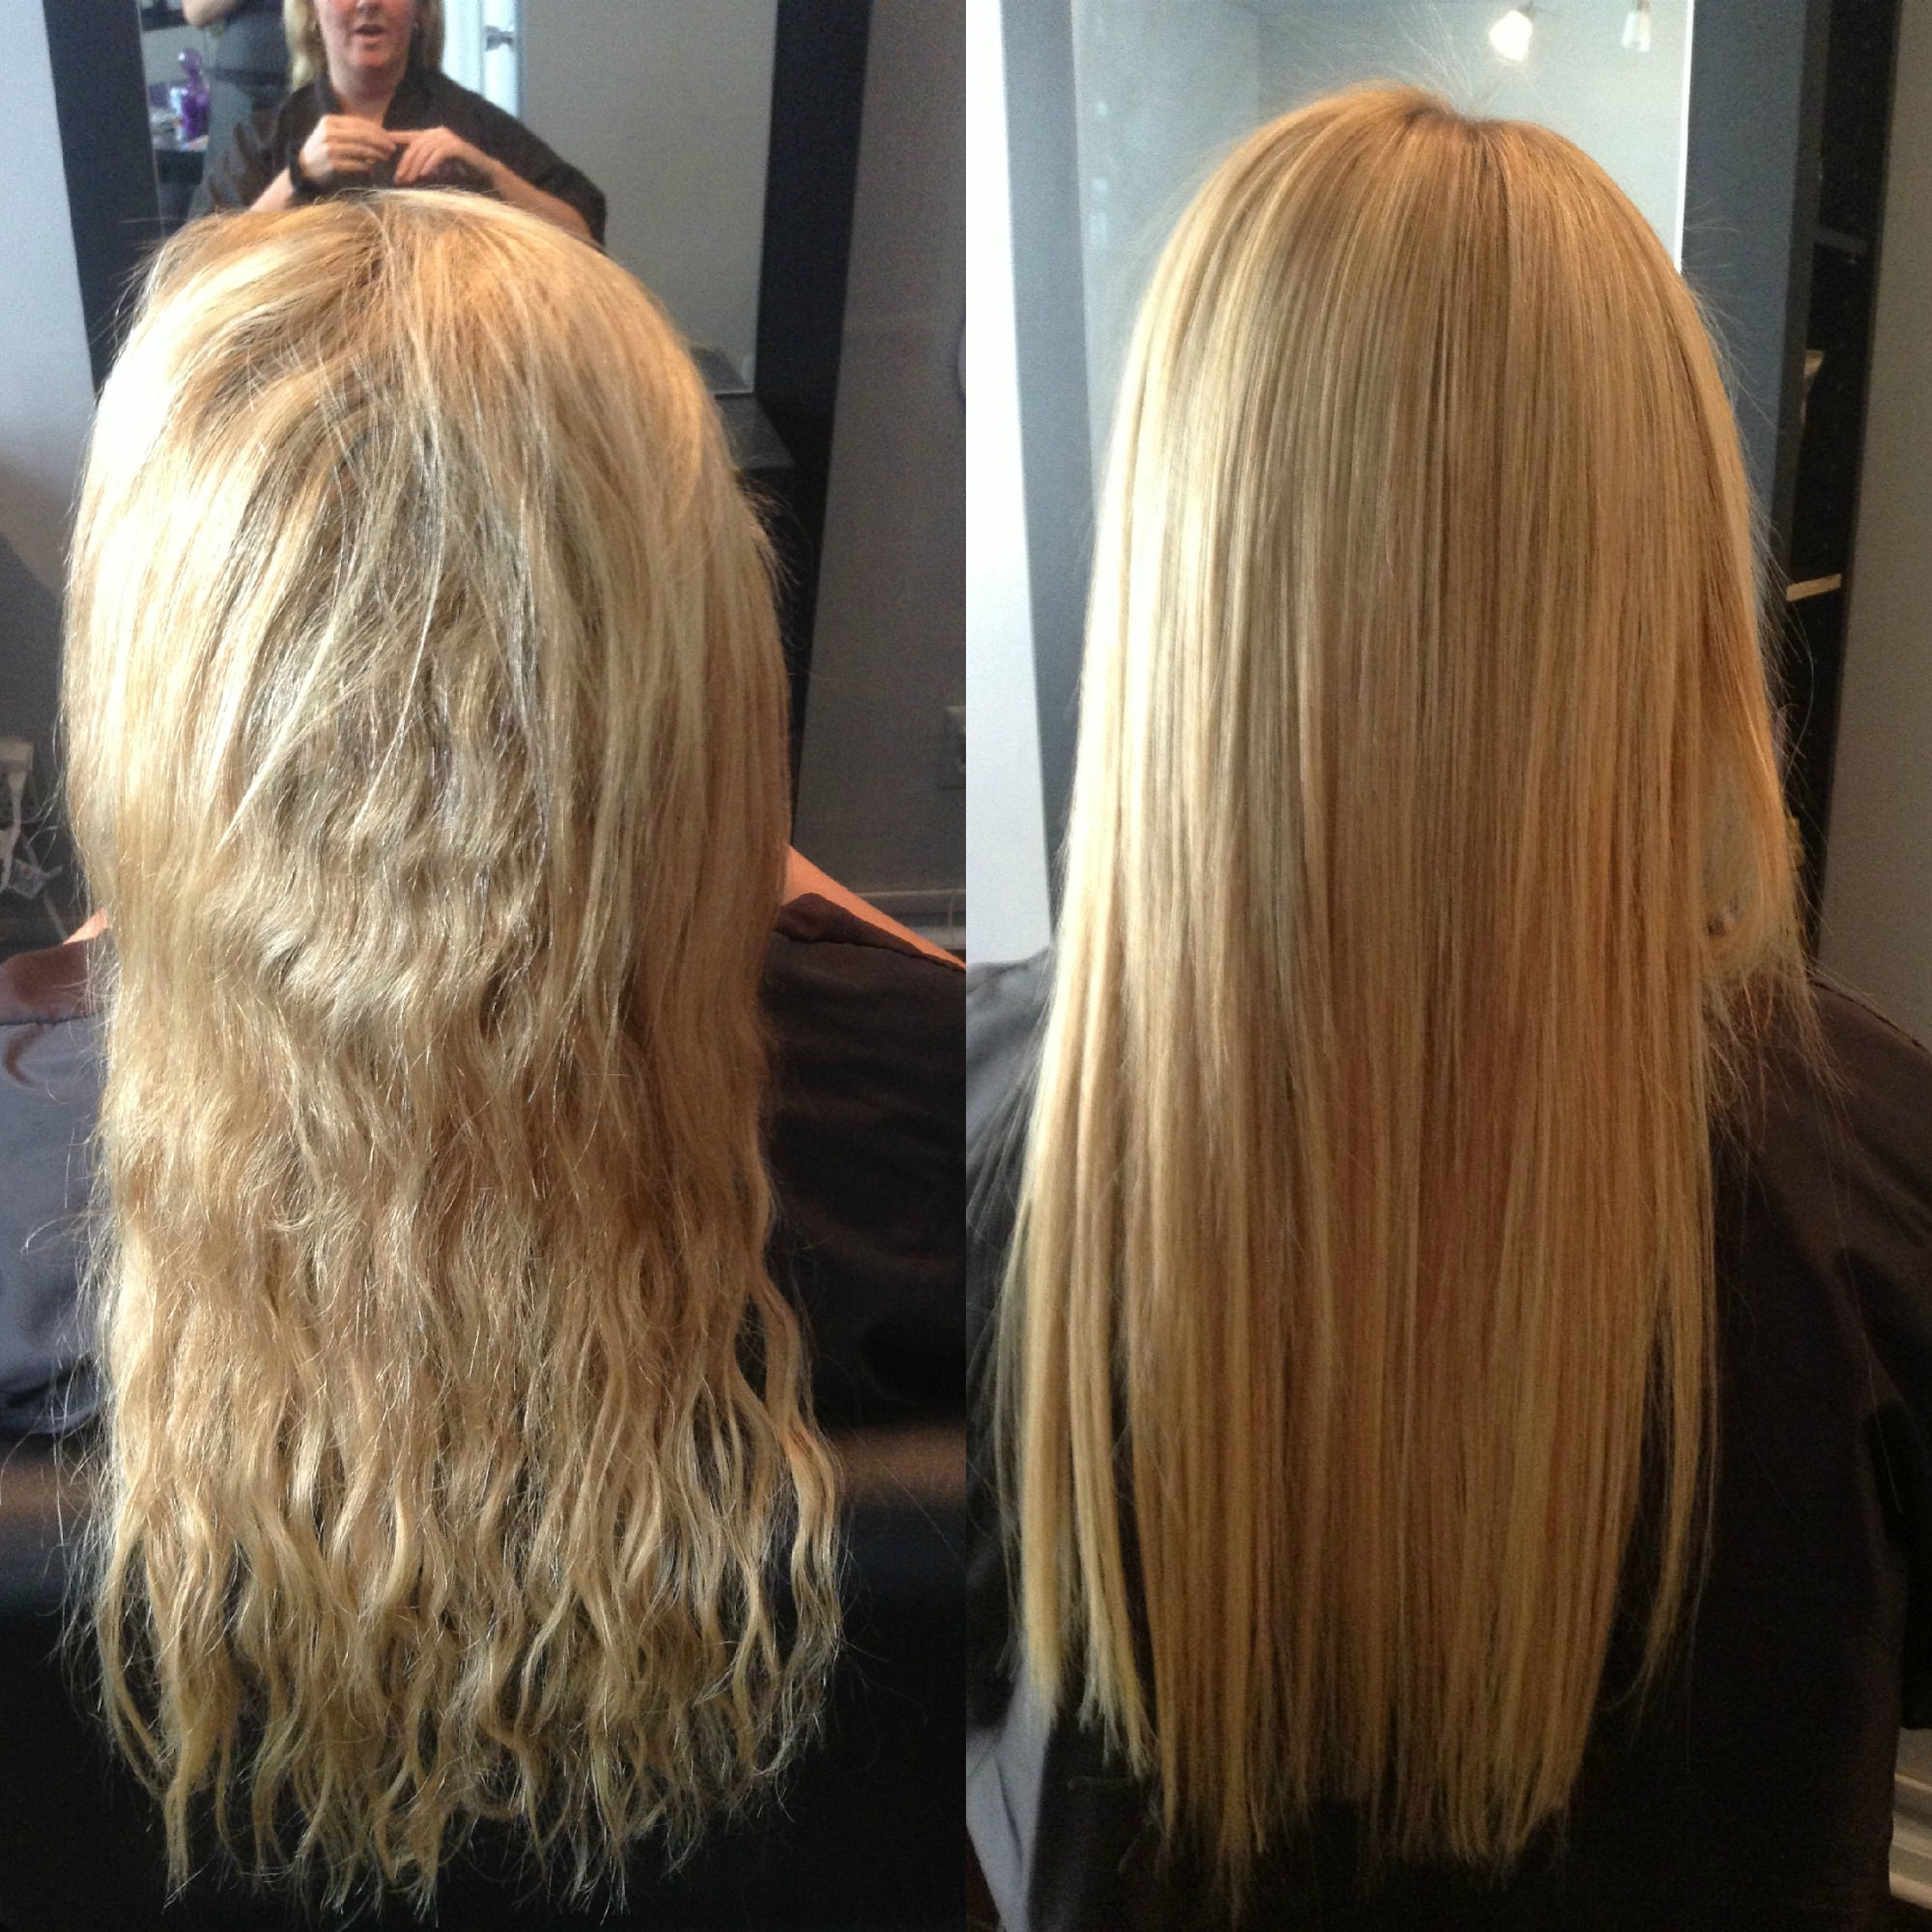 Keratin hair by zaklina - Salon straightening treatments ...